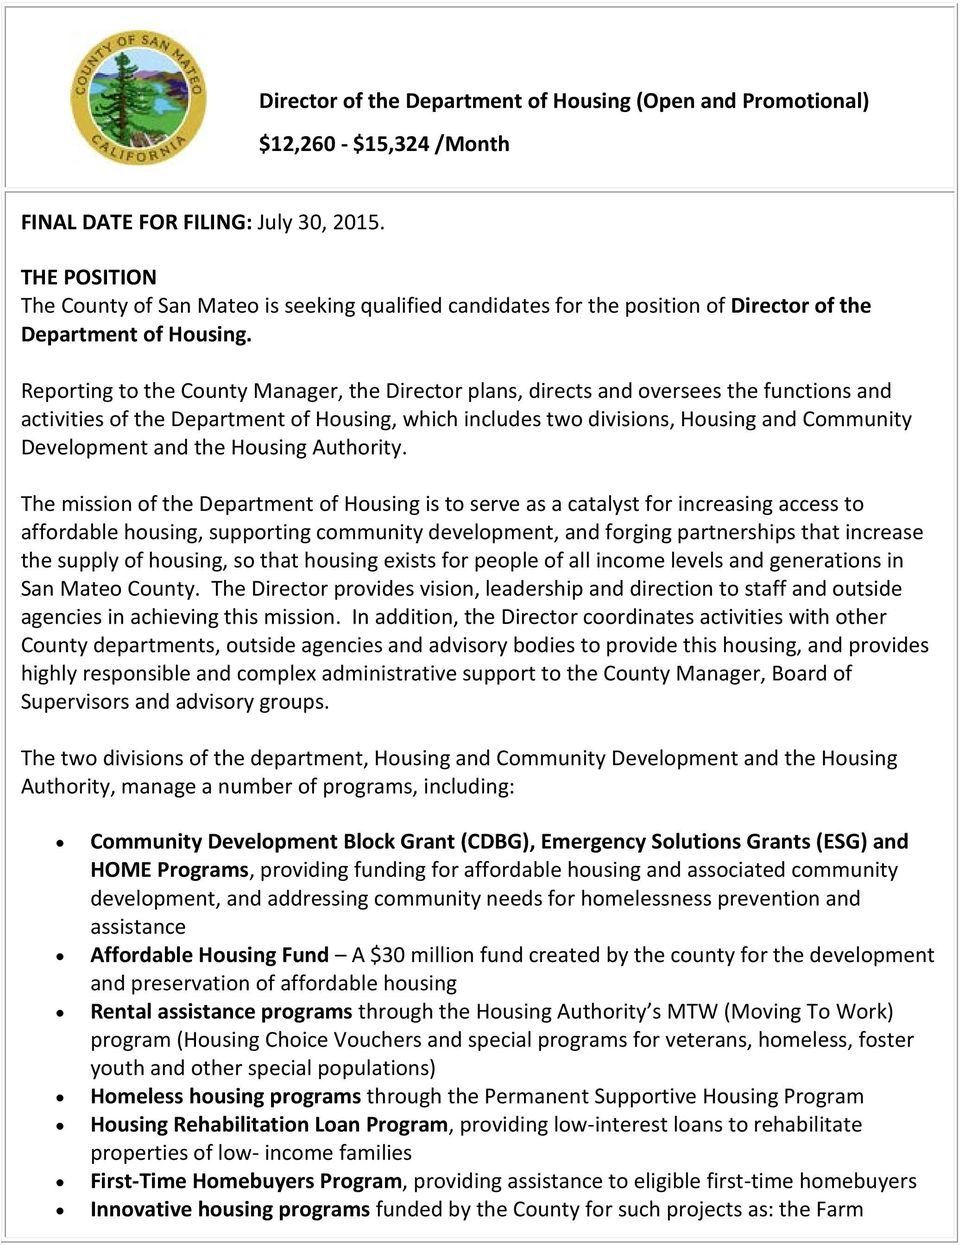 Reporting to the County Manager, the Director plans, directs and oversees the functions and activities of the Department of Housing, which includes two divisions, Housing and Community Development